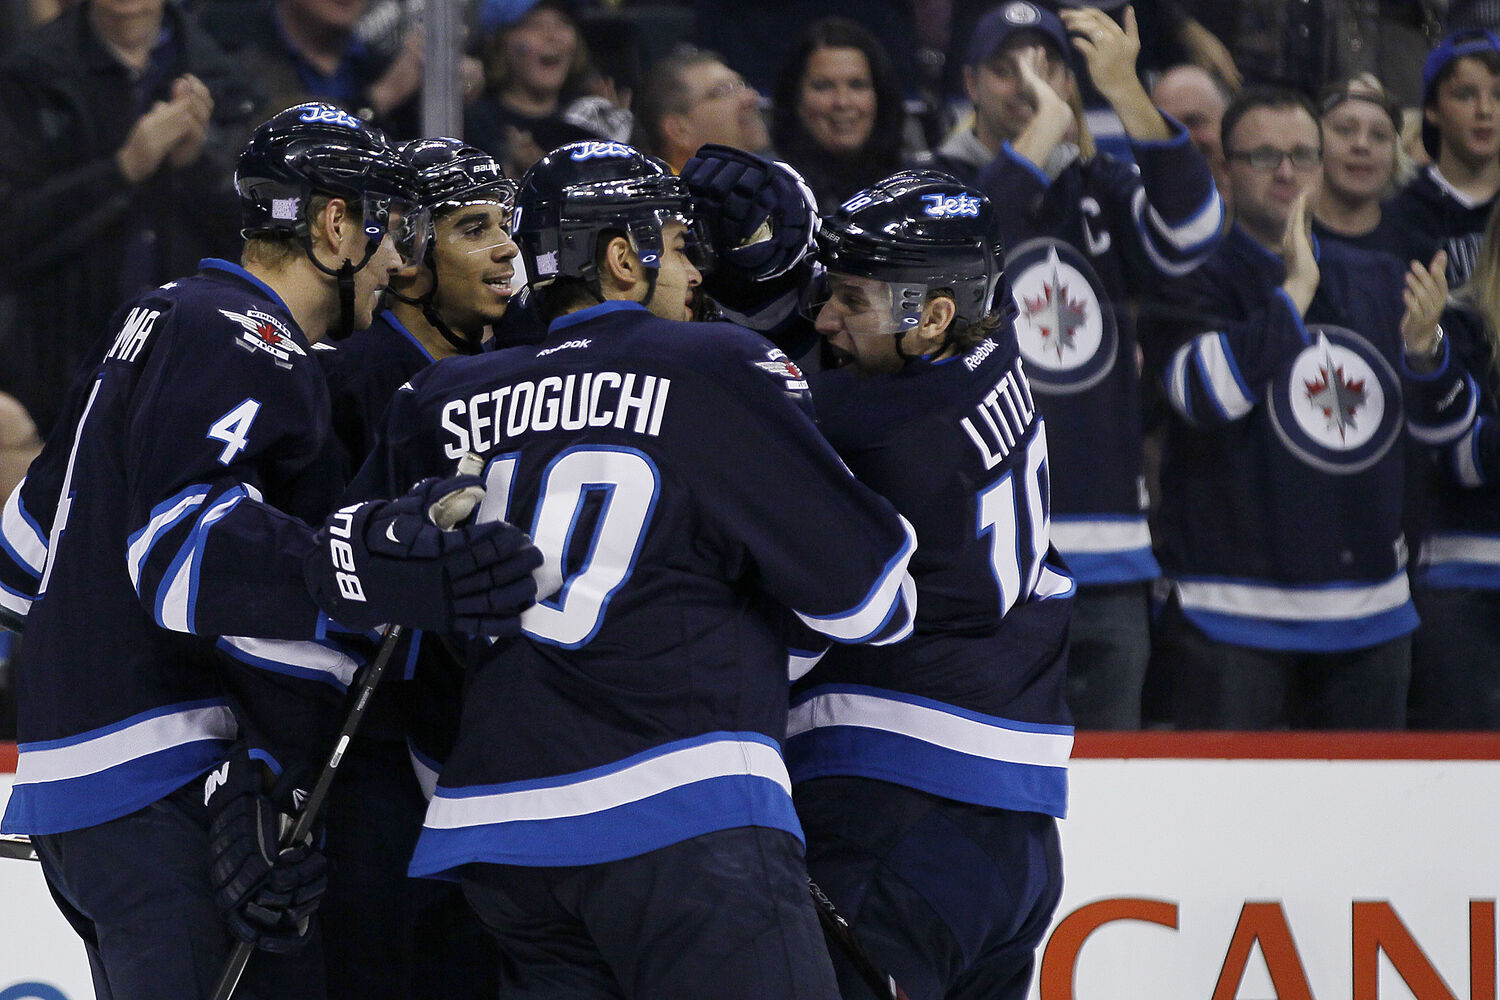 Paul Postma, Evander Kane, Devin Setoguchi and Bryan Little celebrate Kane's goal.